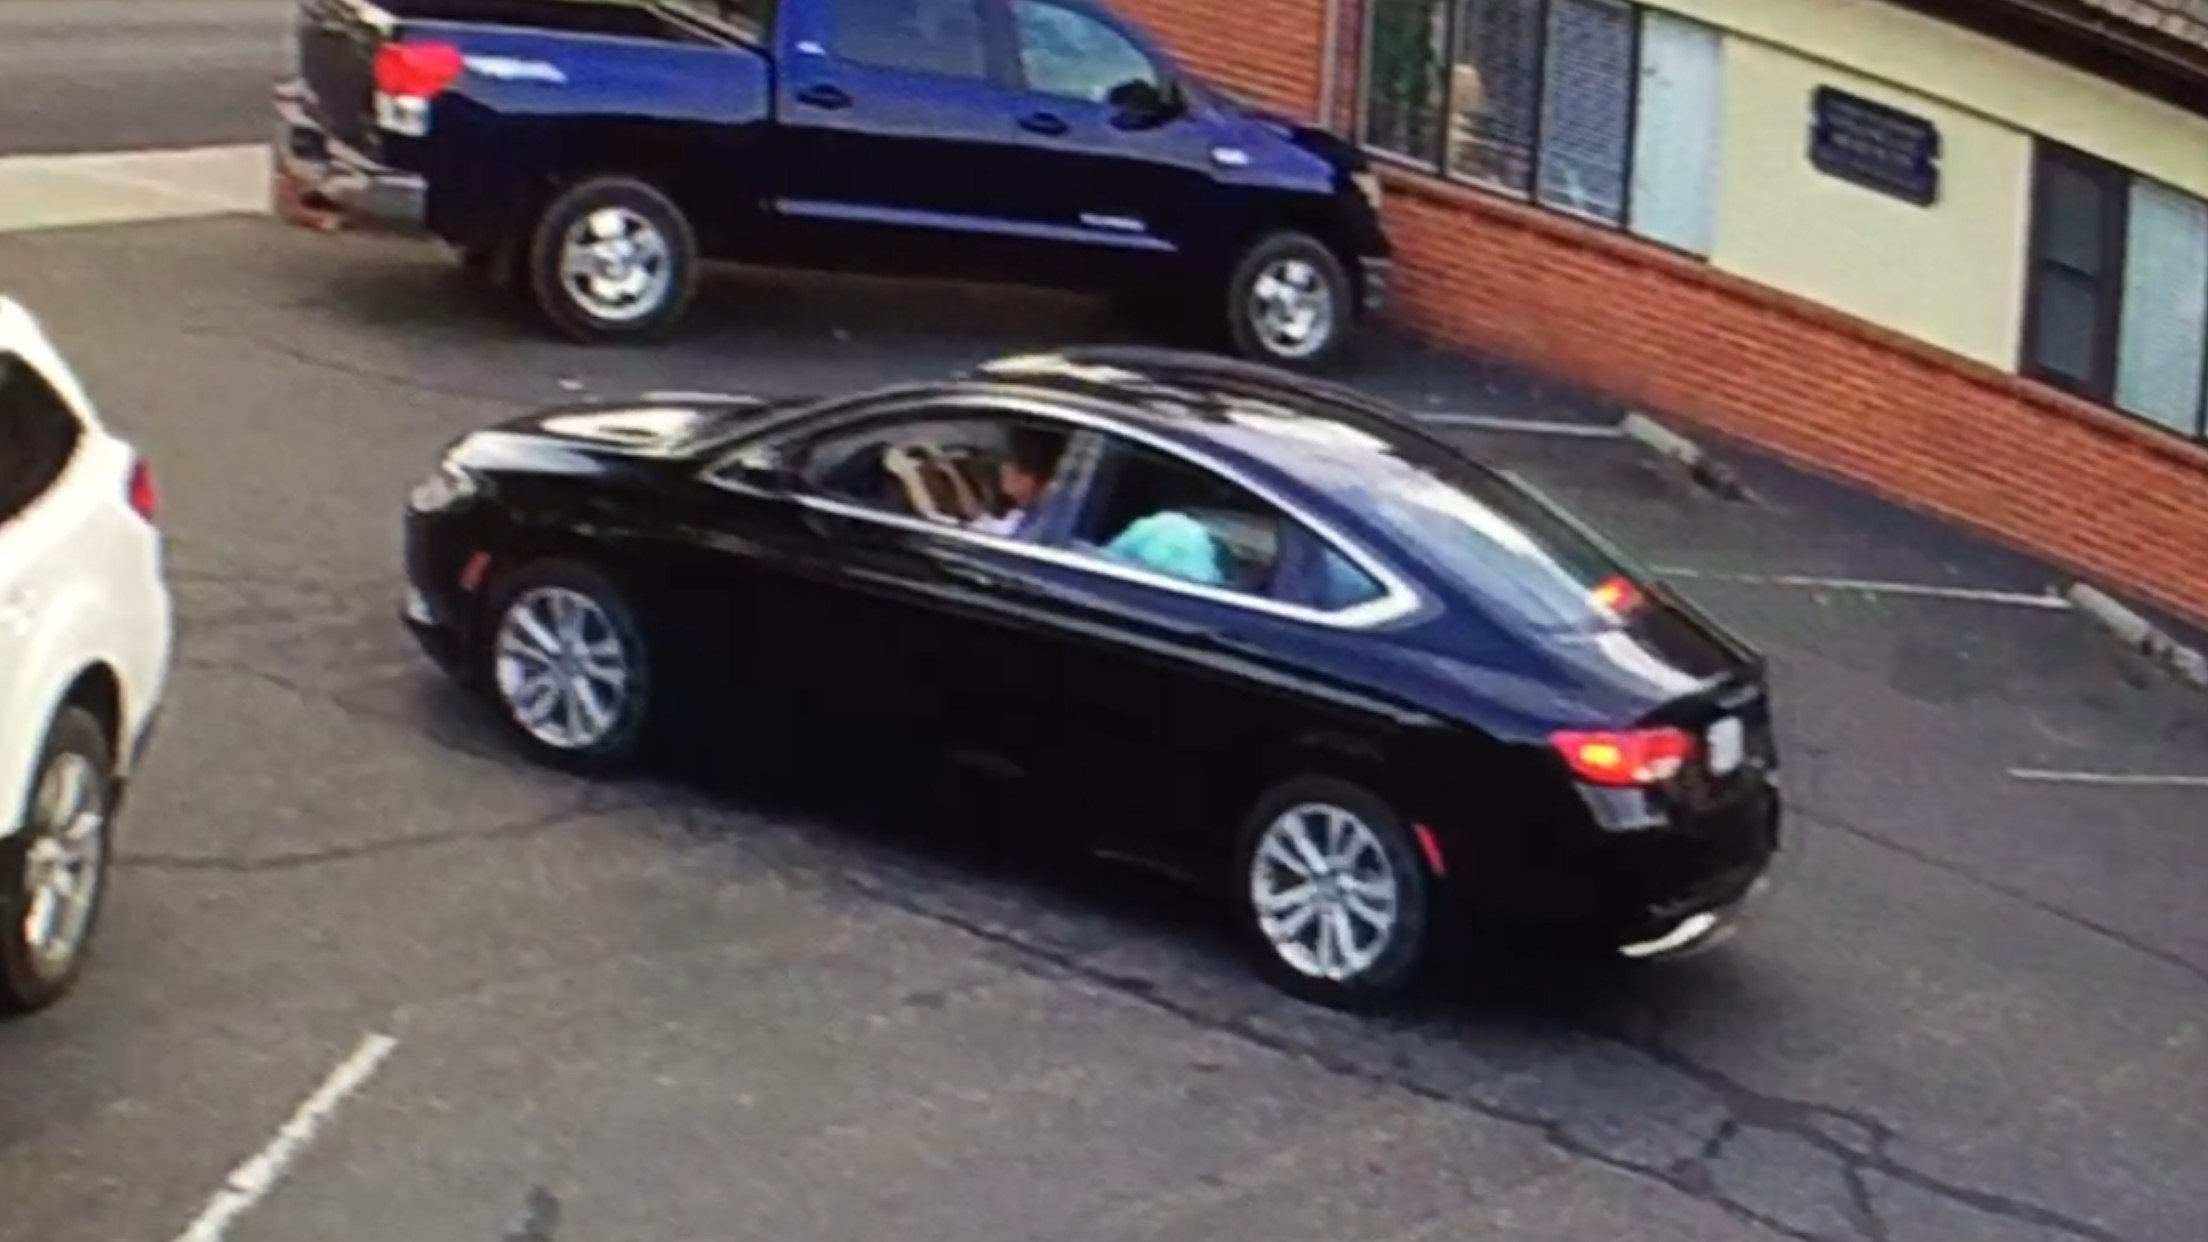 The two were seen in Paris' black 2015 Chrysler 200 with a California license plate number 7NGE514. (Source: SBCSO)